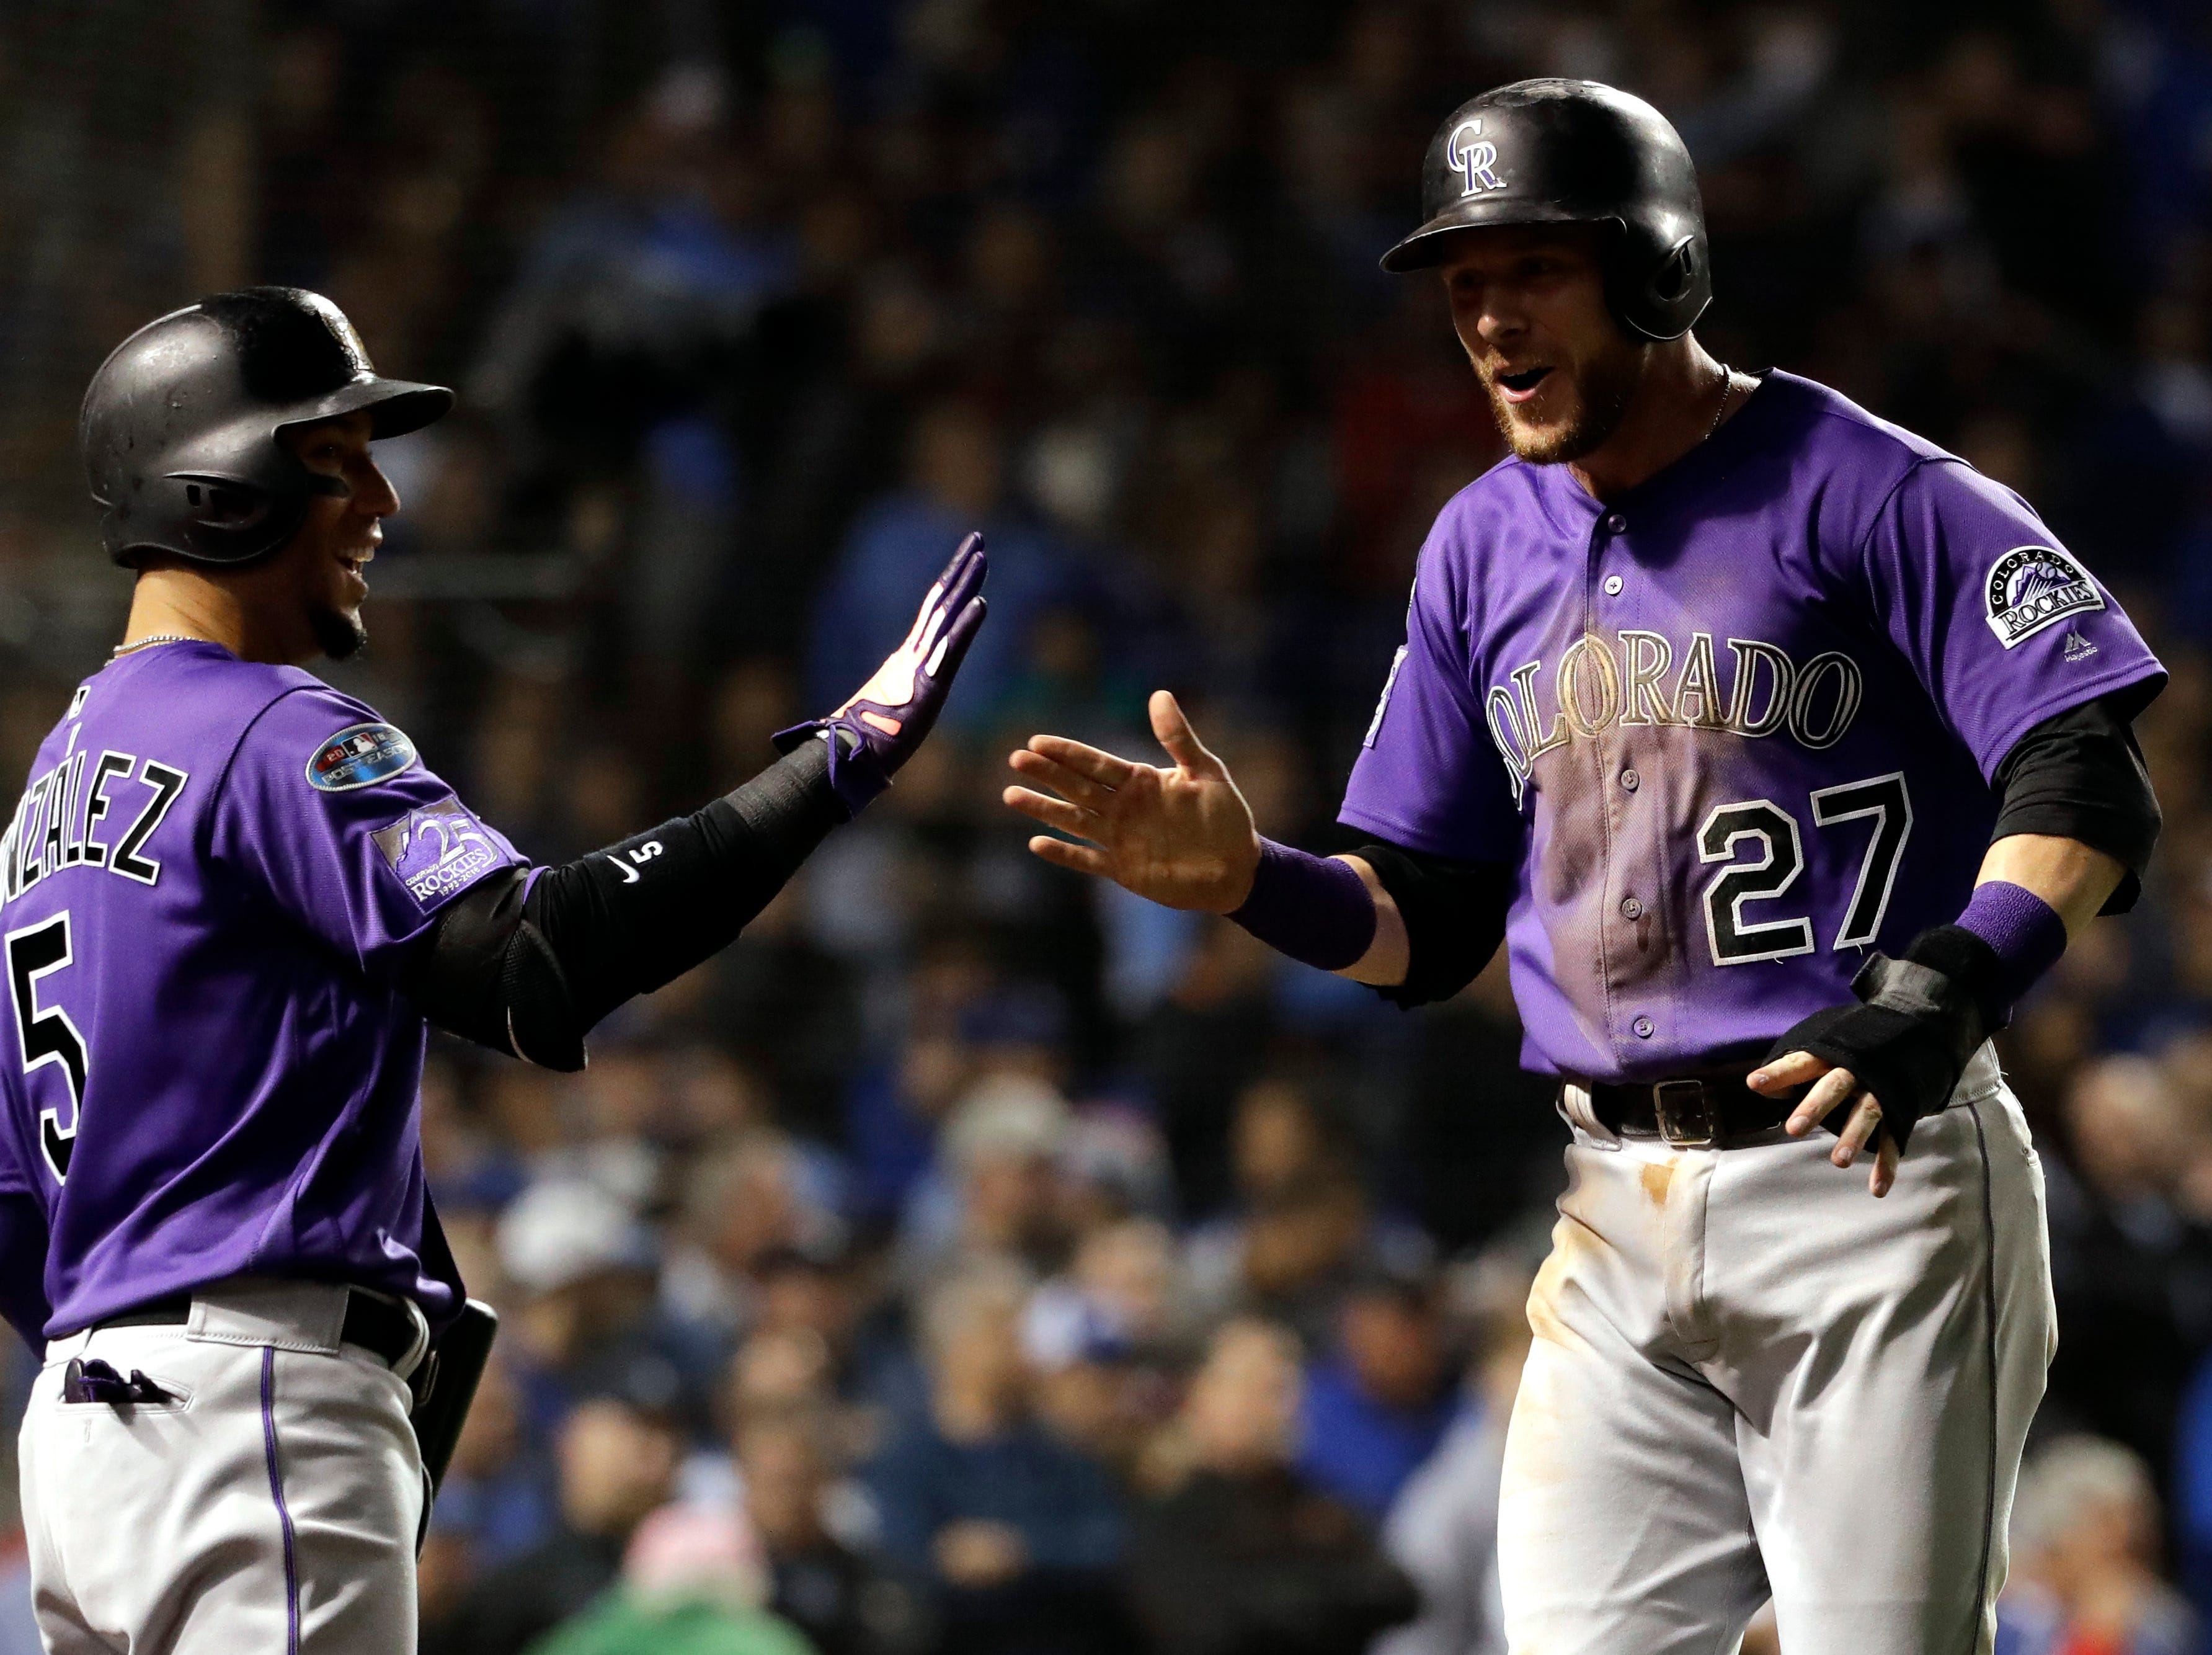 Colorado Rockies' Trevor Story, right, celebrates with Carlos Gonzalez after scoring on a one-run single by Tony Wolters during the 13th inning of the National League wild-card playoff baseball game against the Chicago Cubs, Tuesday, Oct. 2, 2018, in Chicago. (AP Photo/Nam Y. Huh)